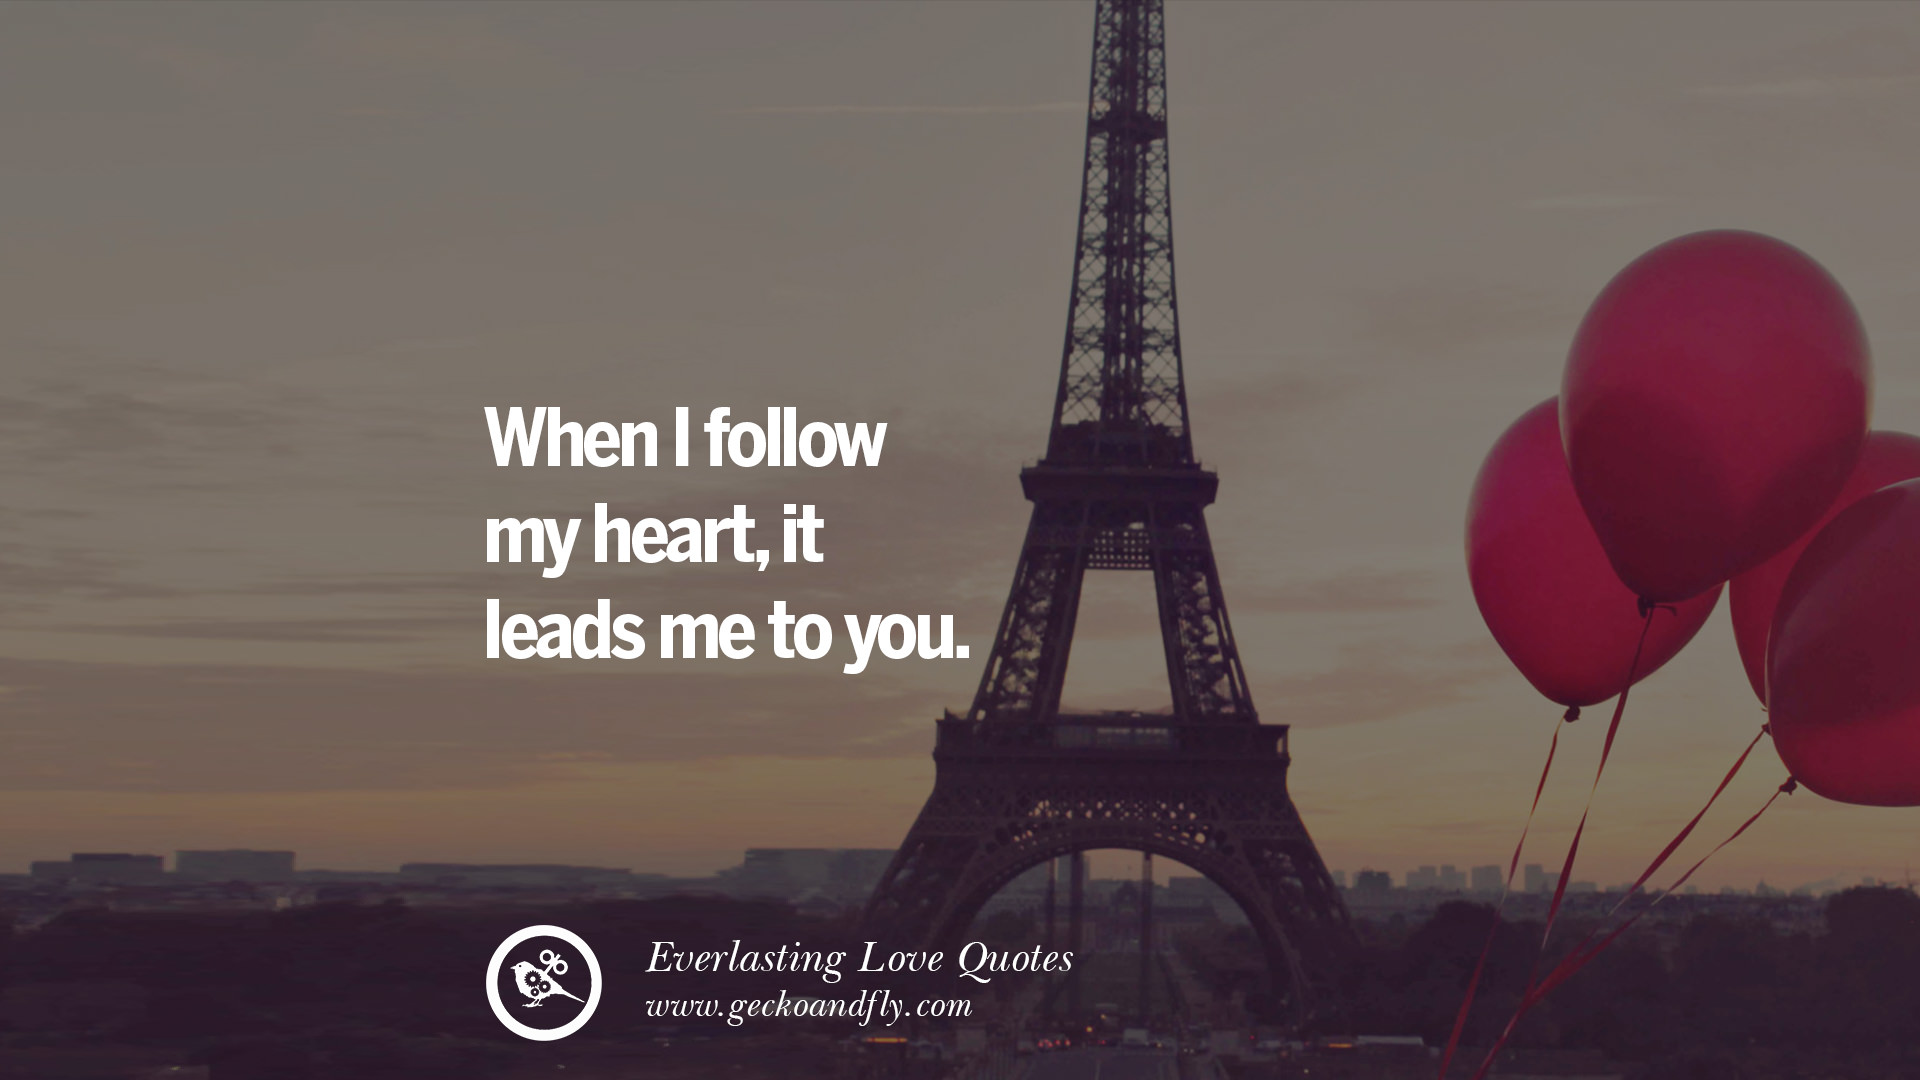 Romantic Quotes: 18 Romantic Love Quotes For Him And Her On Valentine Day